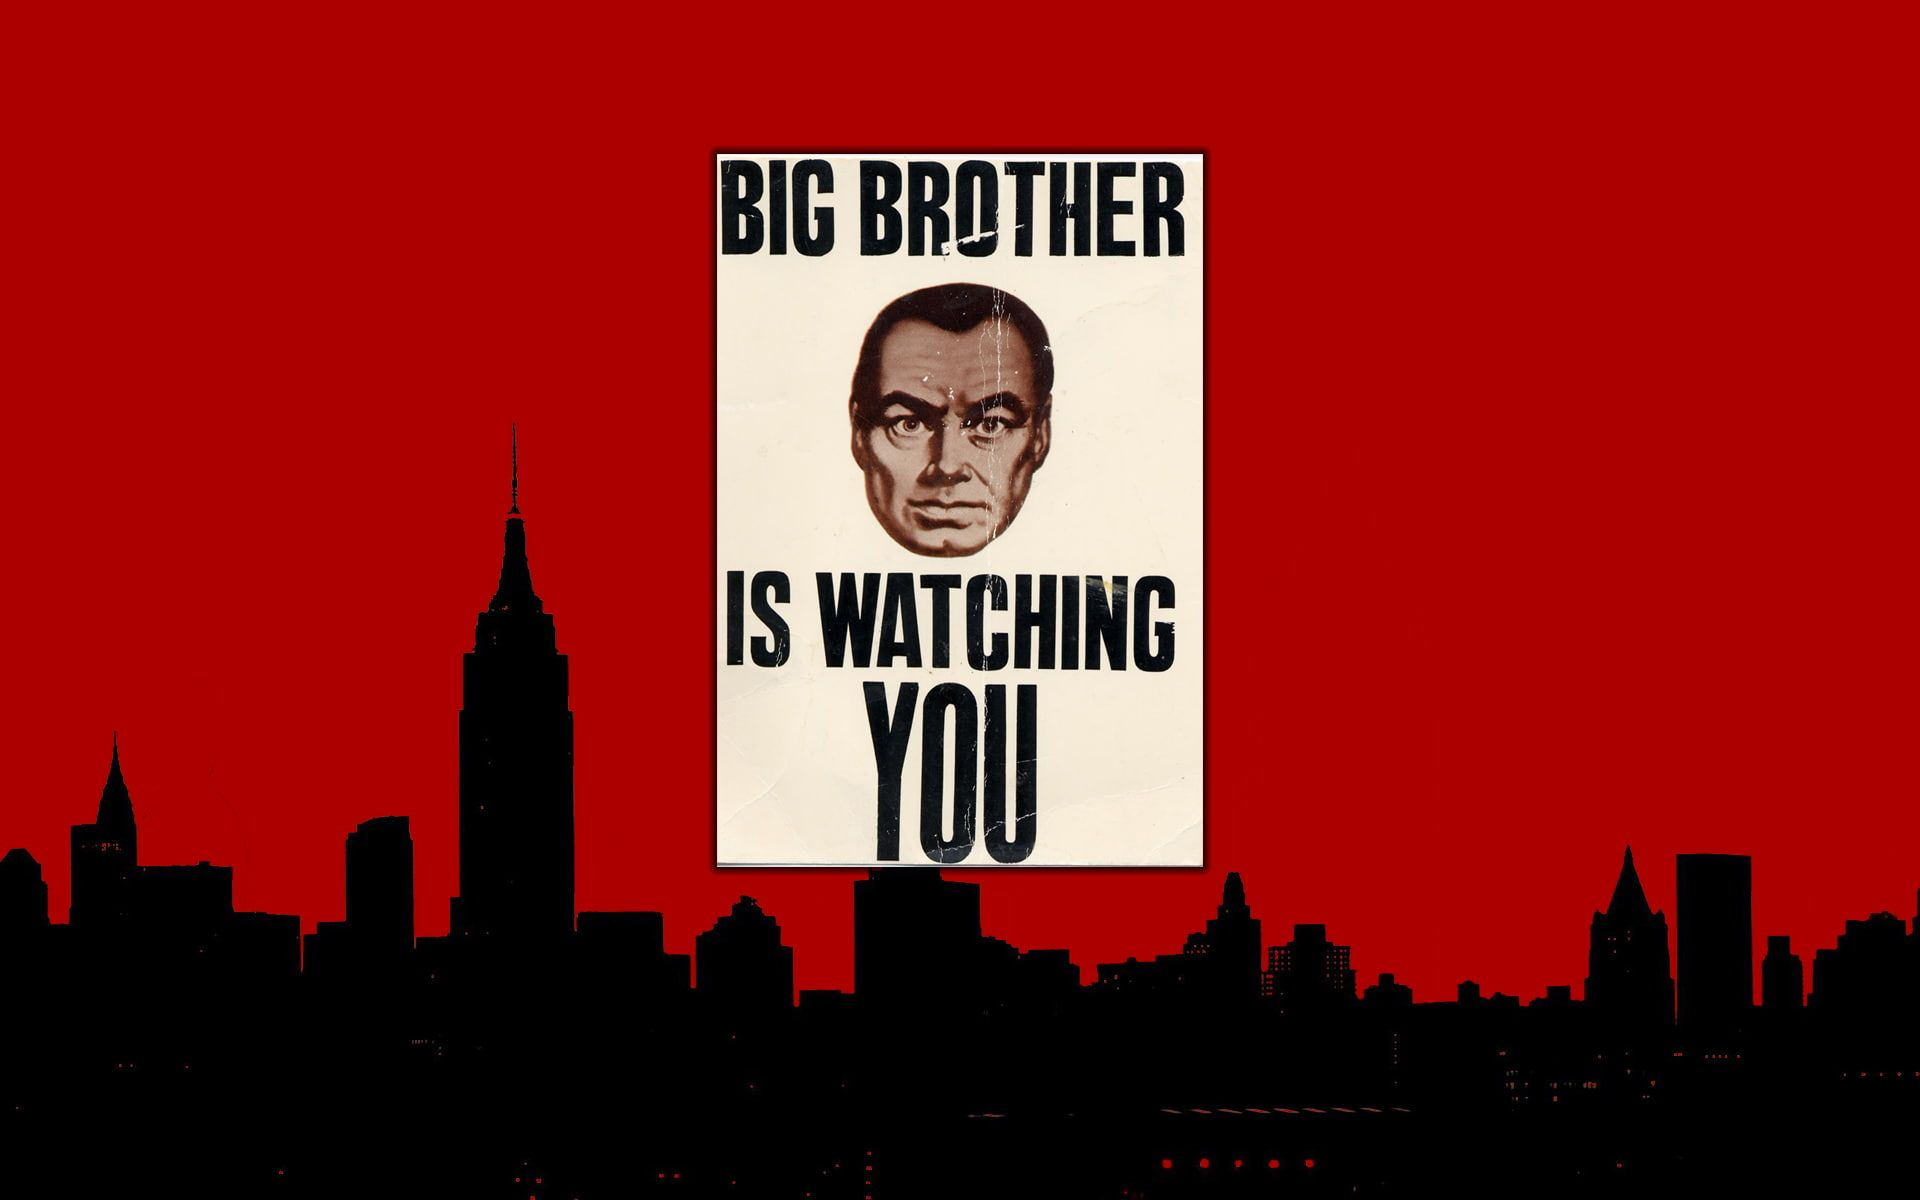 1984 Big Brother Red Hd Big Brother Is Watching You Illustration Movies Red Big 1984 Brother 1080p Wallpaper Hdwallpaper Desktop Ders Calisma Ipuclari